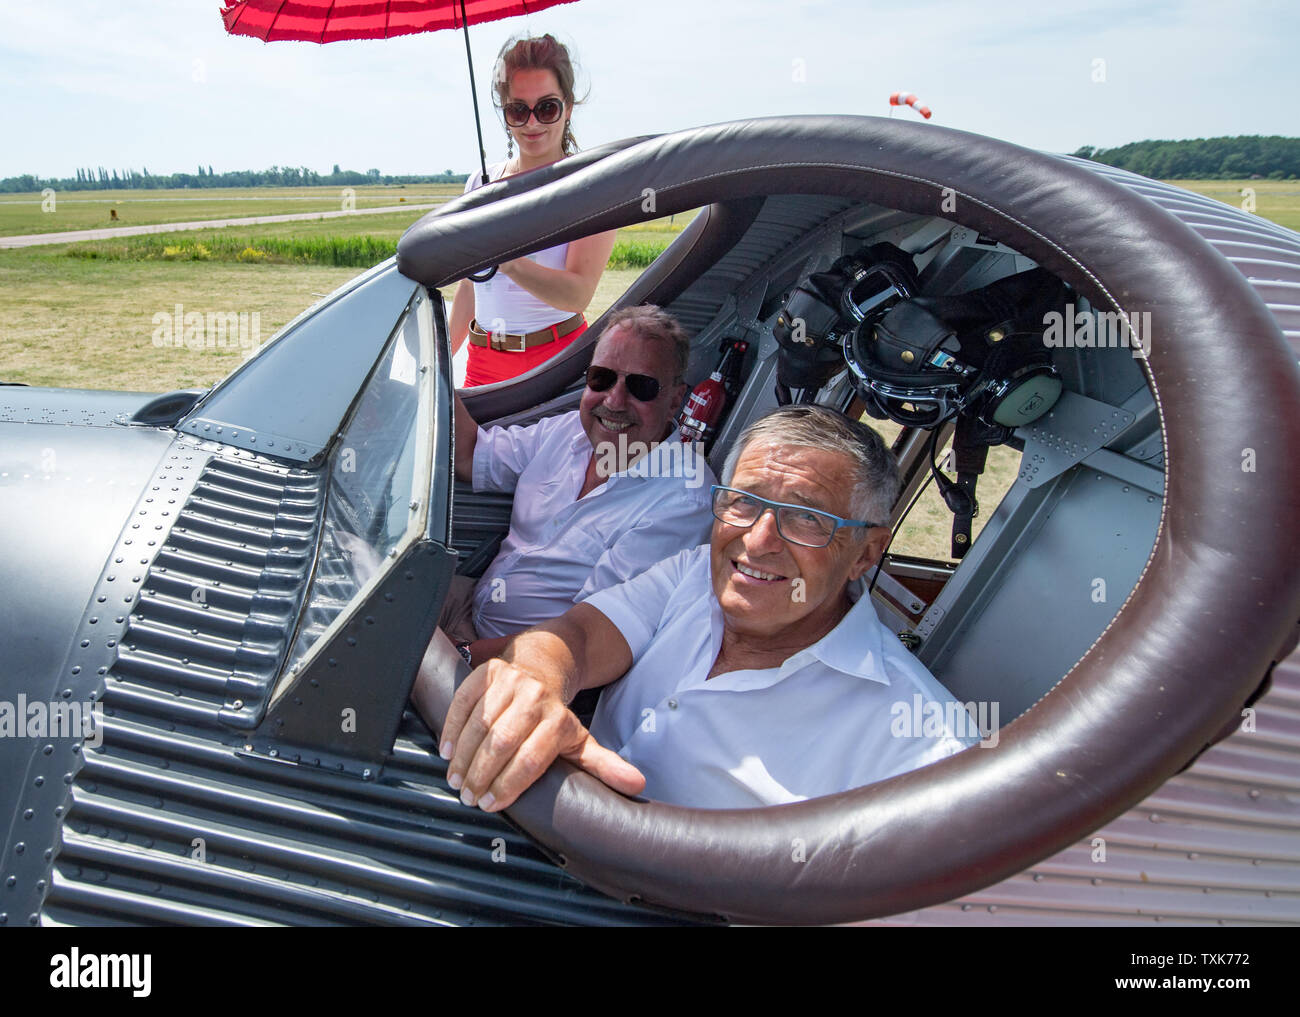 25 June 2019, Saxony-Anhalt, Dessau-Roßlau: The Cologne entrepreneur Dieter Morszeck (l.) and Kurt Waldmeier, founder of Ju-Air, sit on the airfield in Dessau as pilots in the cockpit of a Junkers F 13. Exactly 100 years ago, an aircraft of this type had taken off for the first time in Dessau. The aircraft, designed by aircraft pioneer Hugo Junkers, was the world's first all-metal commercial aircraft and is regarded as a pioneer in civil aviation. Since 2016, the machine has again been manufactured in small series in Switzerland. Photo: Hendrik Schmidt/dpa-Zentralbild/dpa - Stock Image